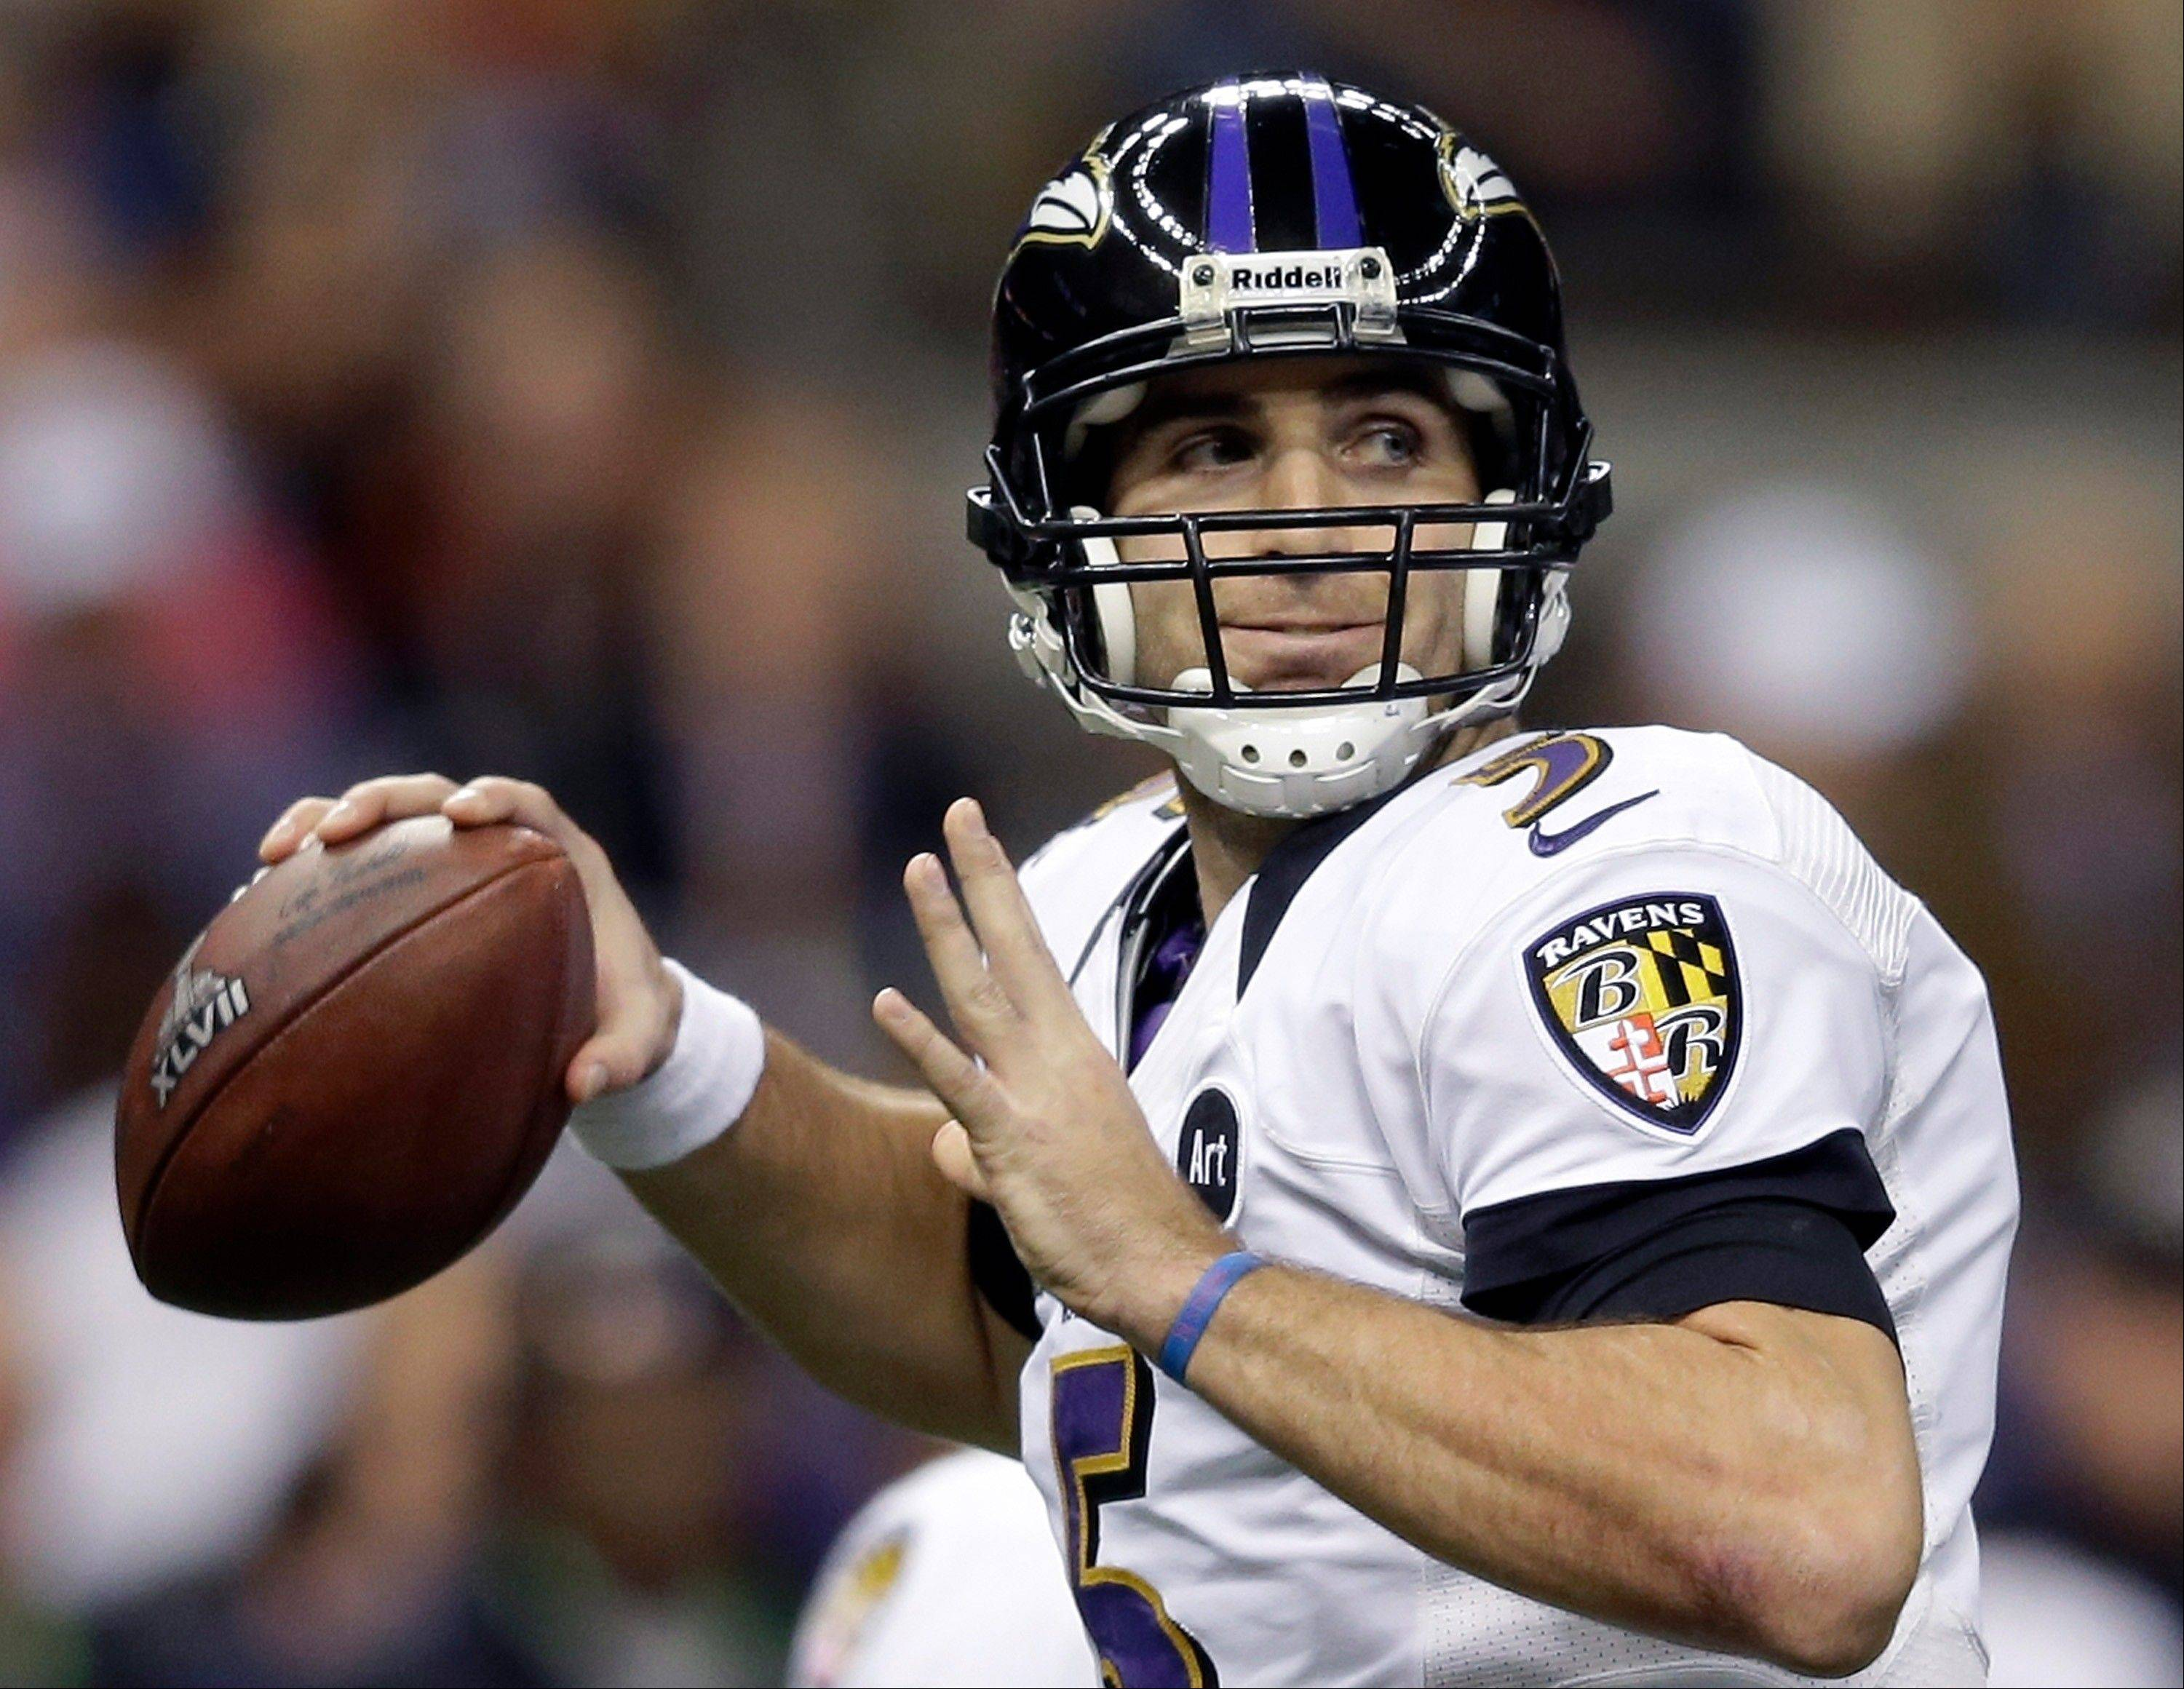 FILE - In this Feb. 3, 2013, file phot, Baltimore Ravens quarterback Joe Flacco (5) looks to throw a pass during the first half of the NFL Super Bowl XLVII football game against the San Francisco 49ers in New Orleans. A person with knowledge of the deal tells The Associated Press that Flacco has agreed on a new contract with the Ravens. The person spoke on condition of anonymity on Friday, March 1, 2013, because the agreement has not officially been announced. Terms of the deal were not immediately available. (AP Photo/Evan Vucci, FIle)